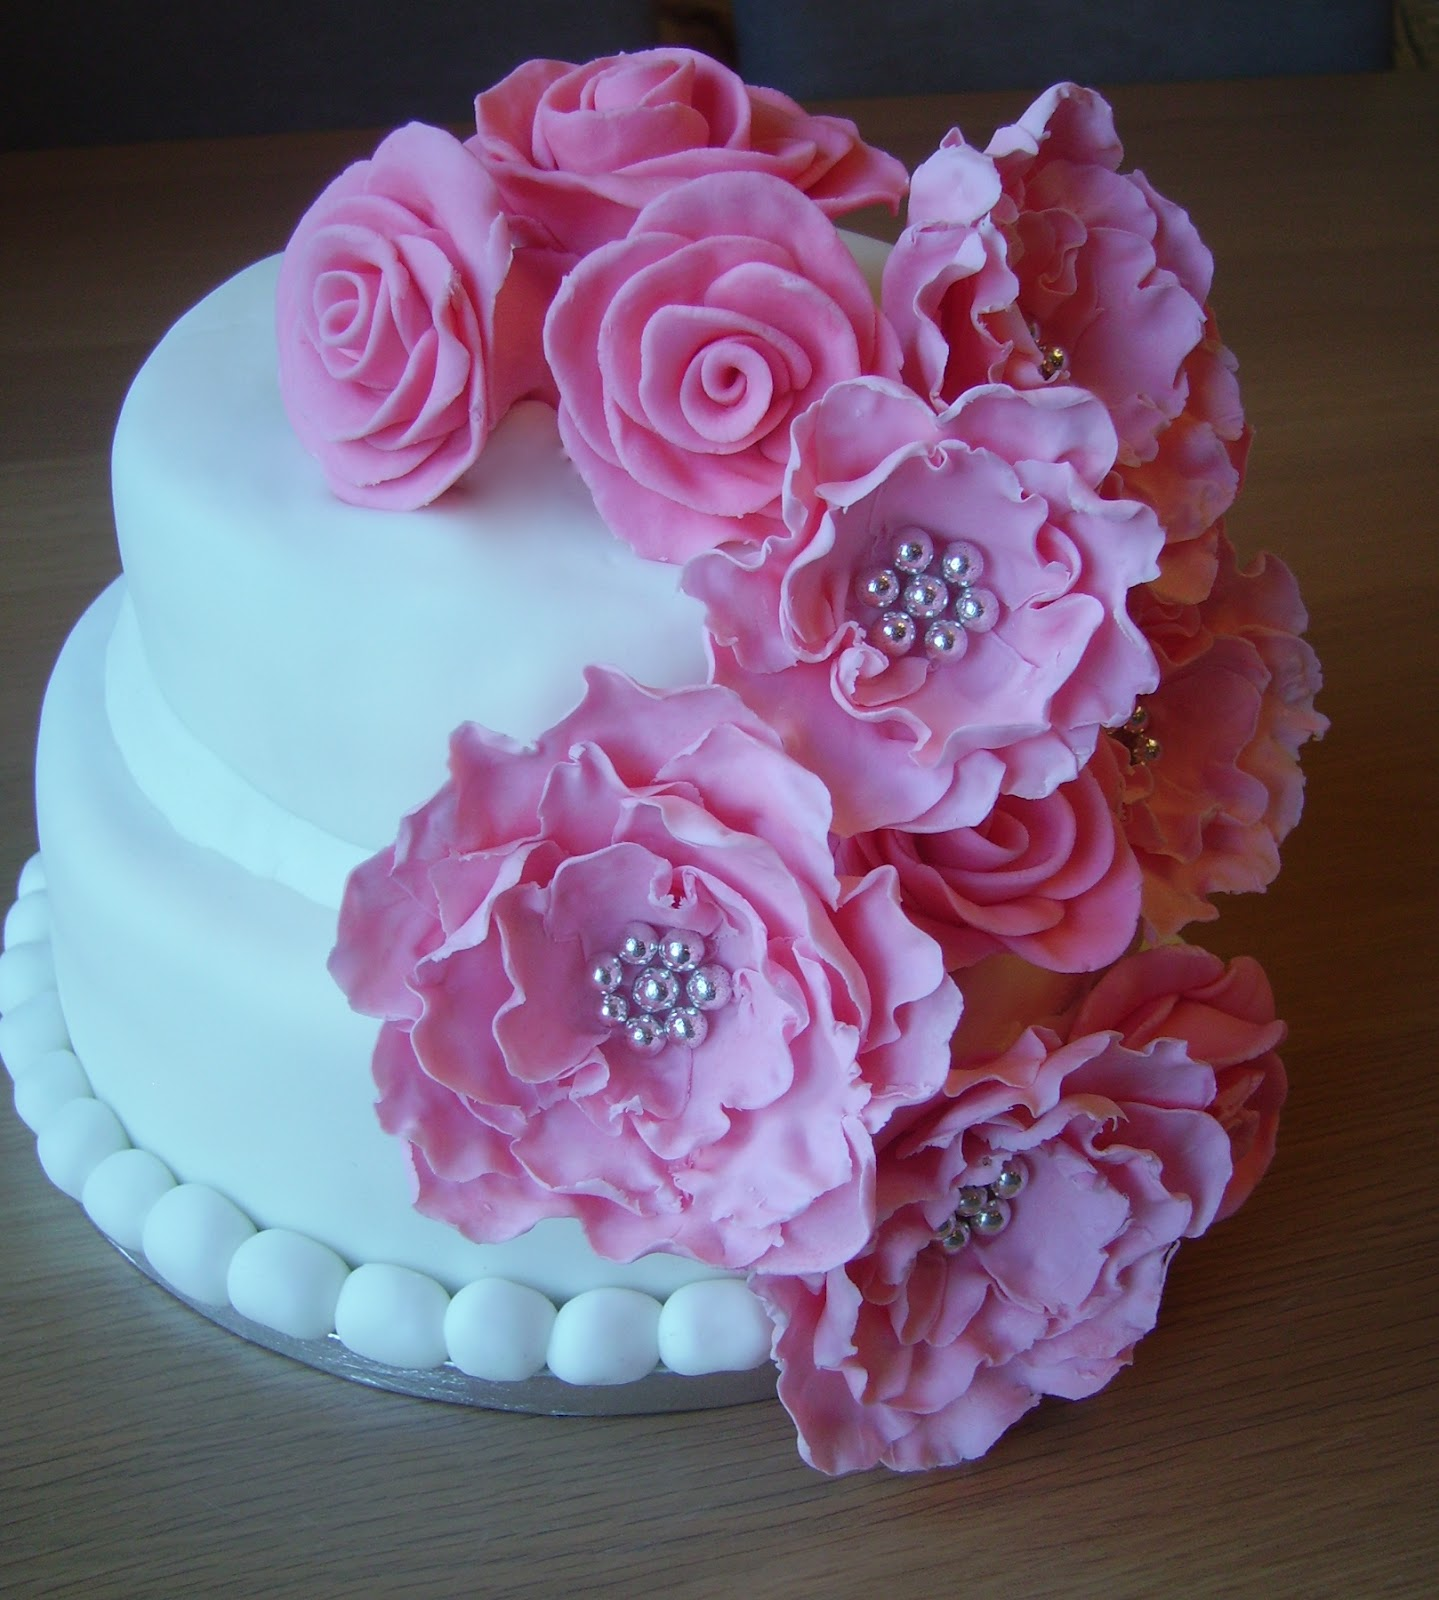 Chocolate Birthday Cake with Pink Flowers